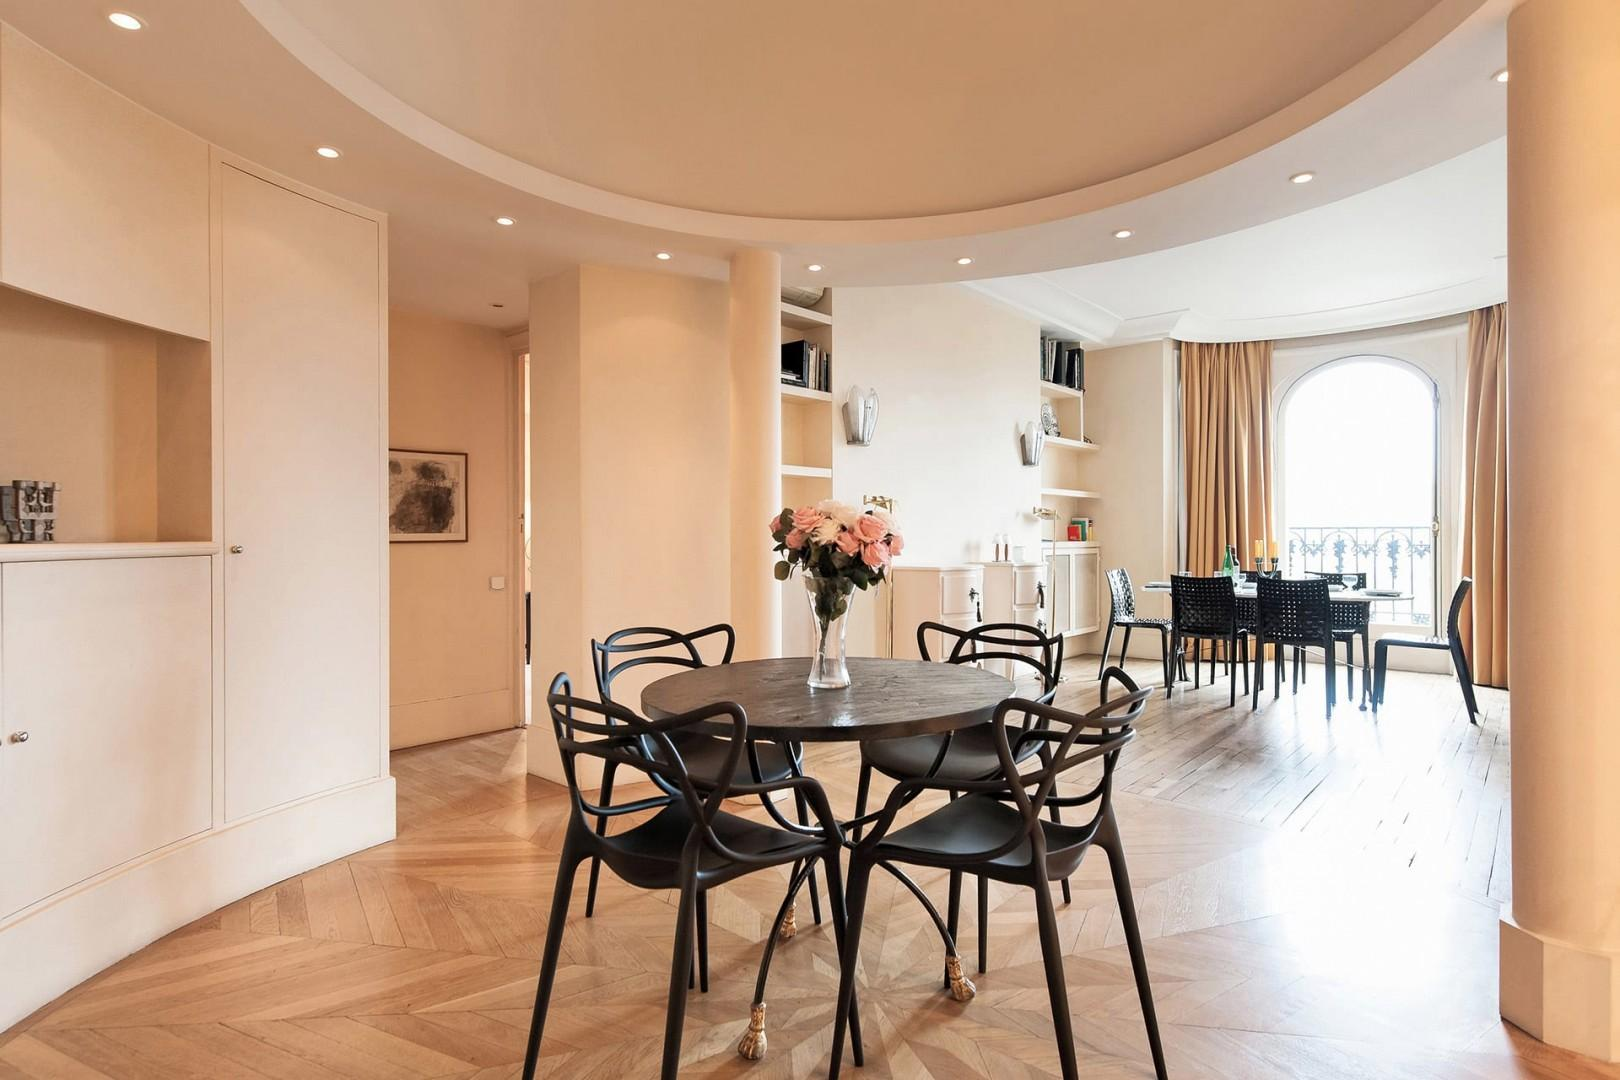 Additional dining area with beautiful chairs